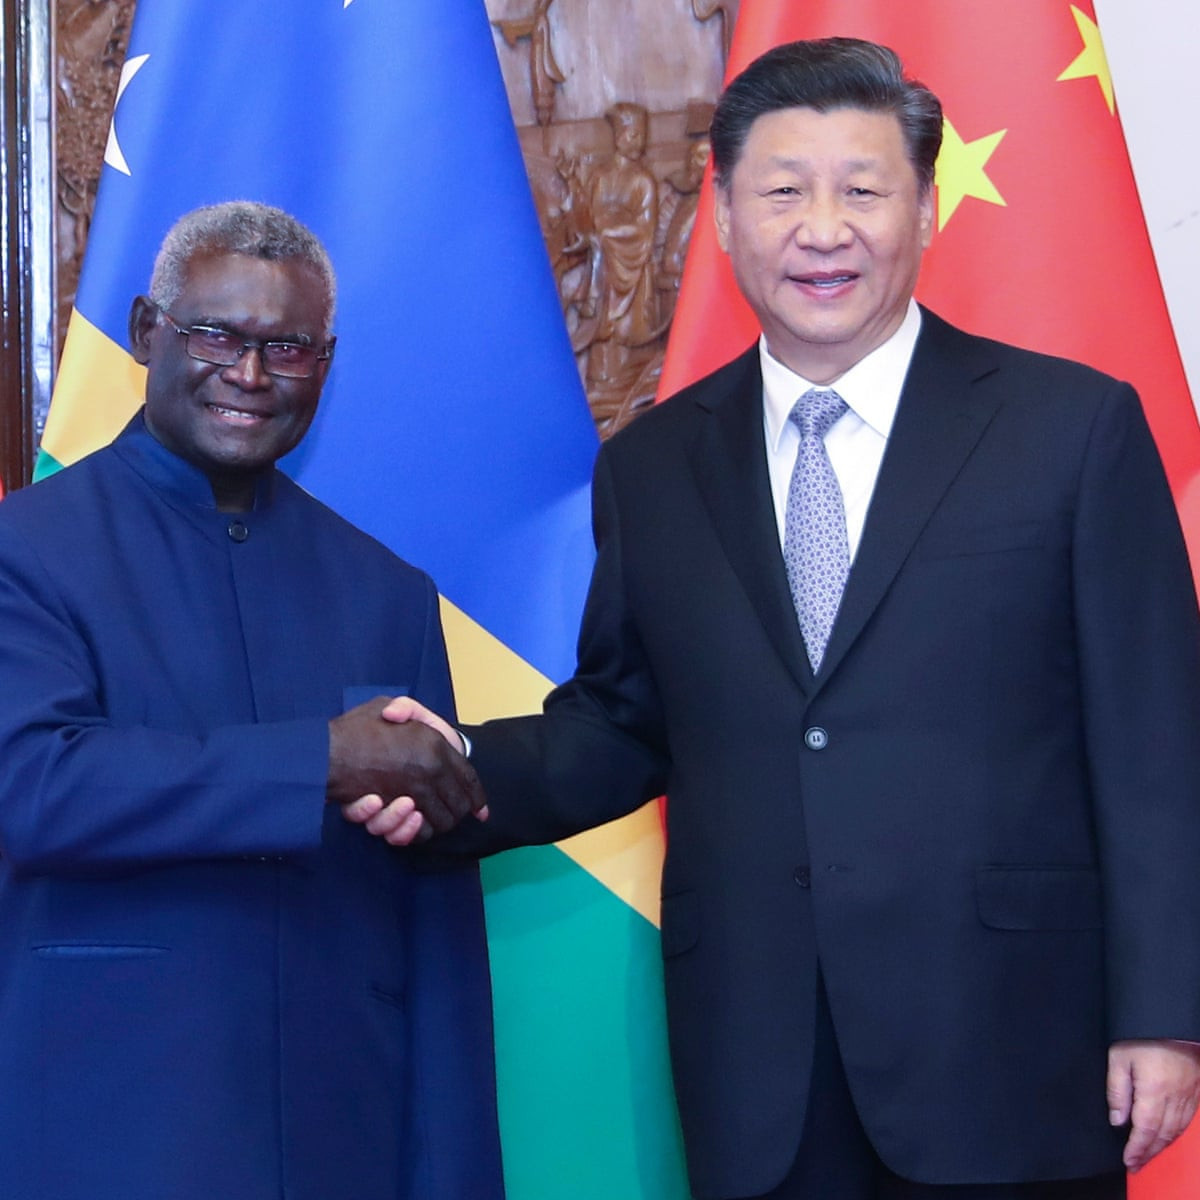 China are helping build facilities for the 2023 Pacific Games in the Solomon Islands following an agreement between the two countries signed last December ©Solomon Islands Government